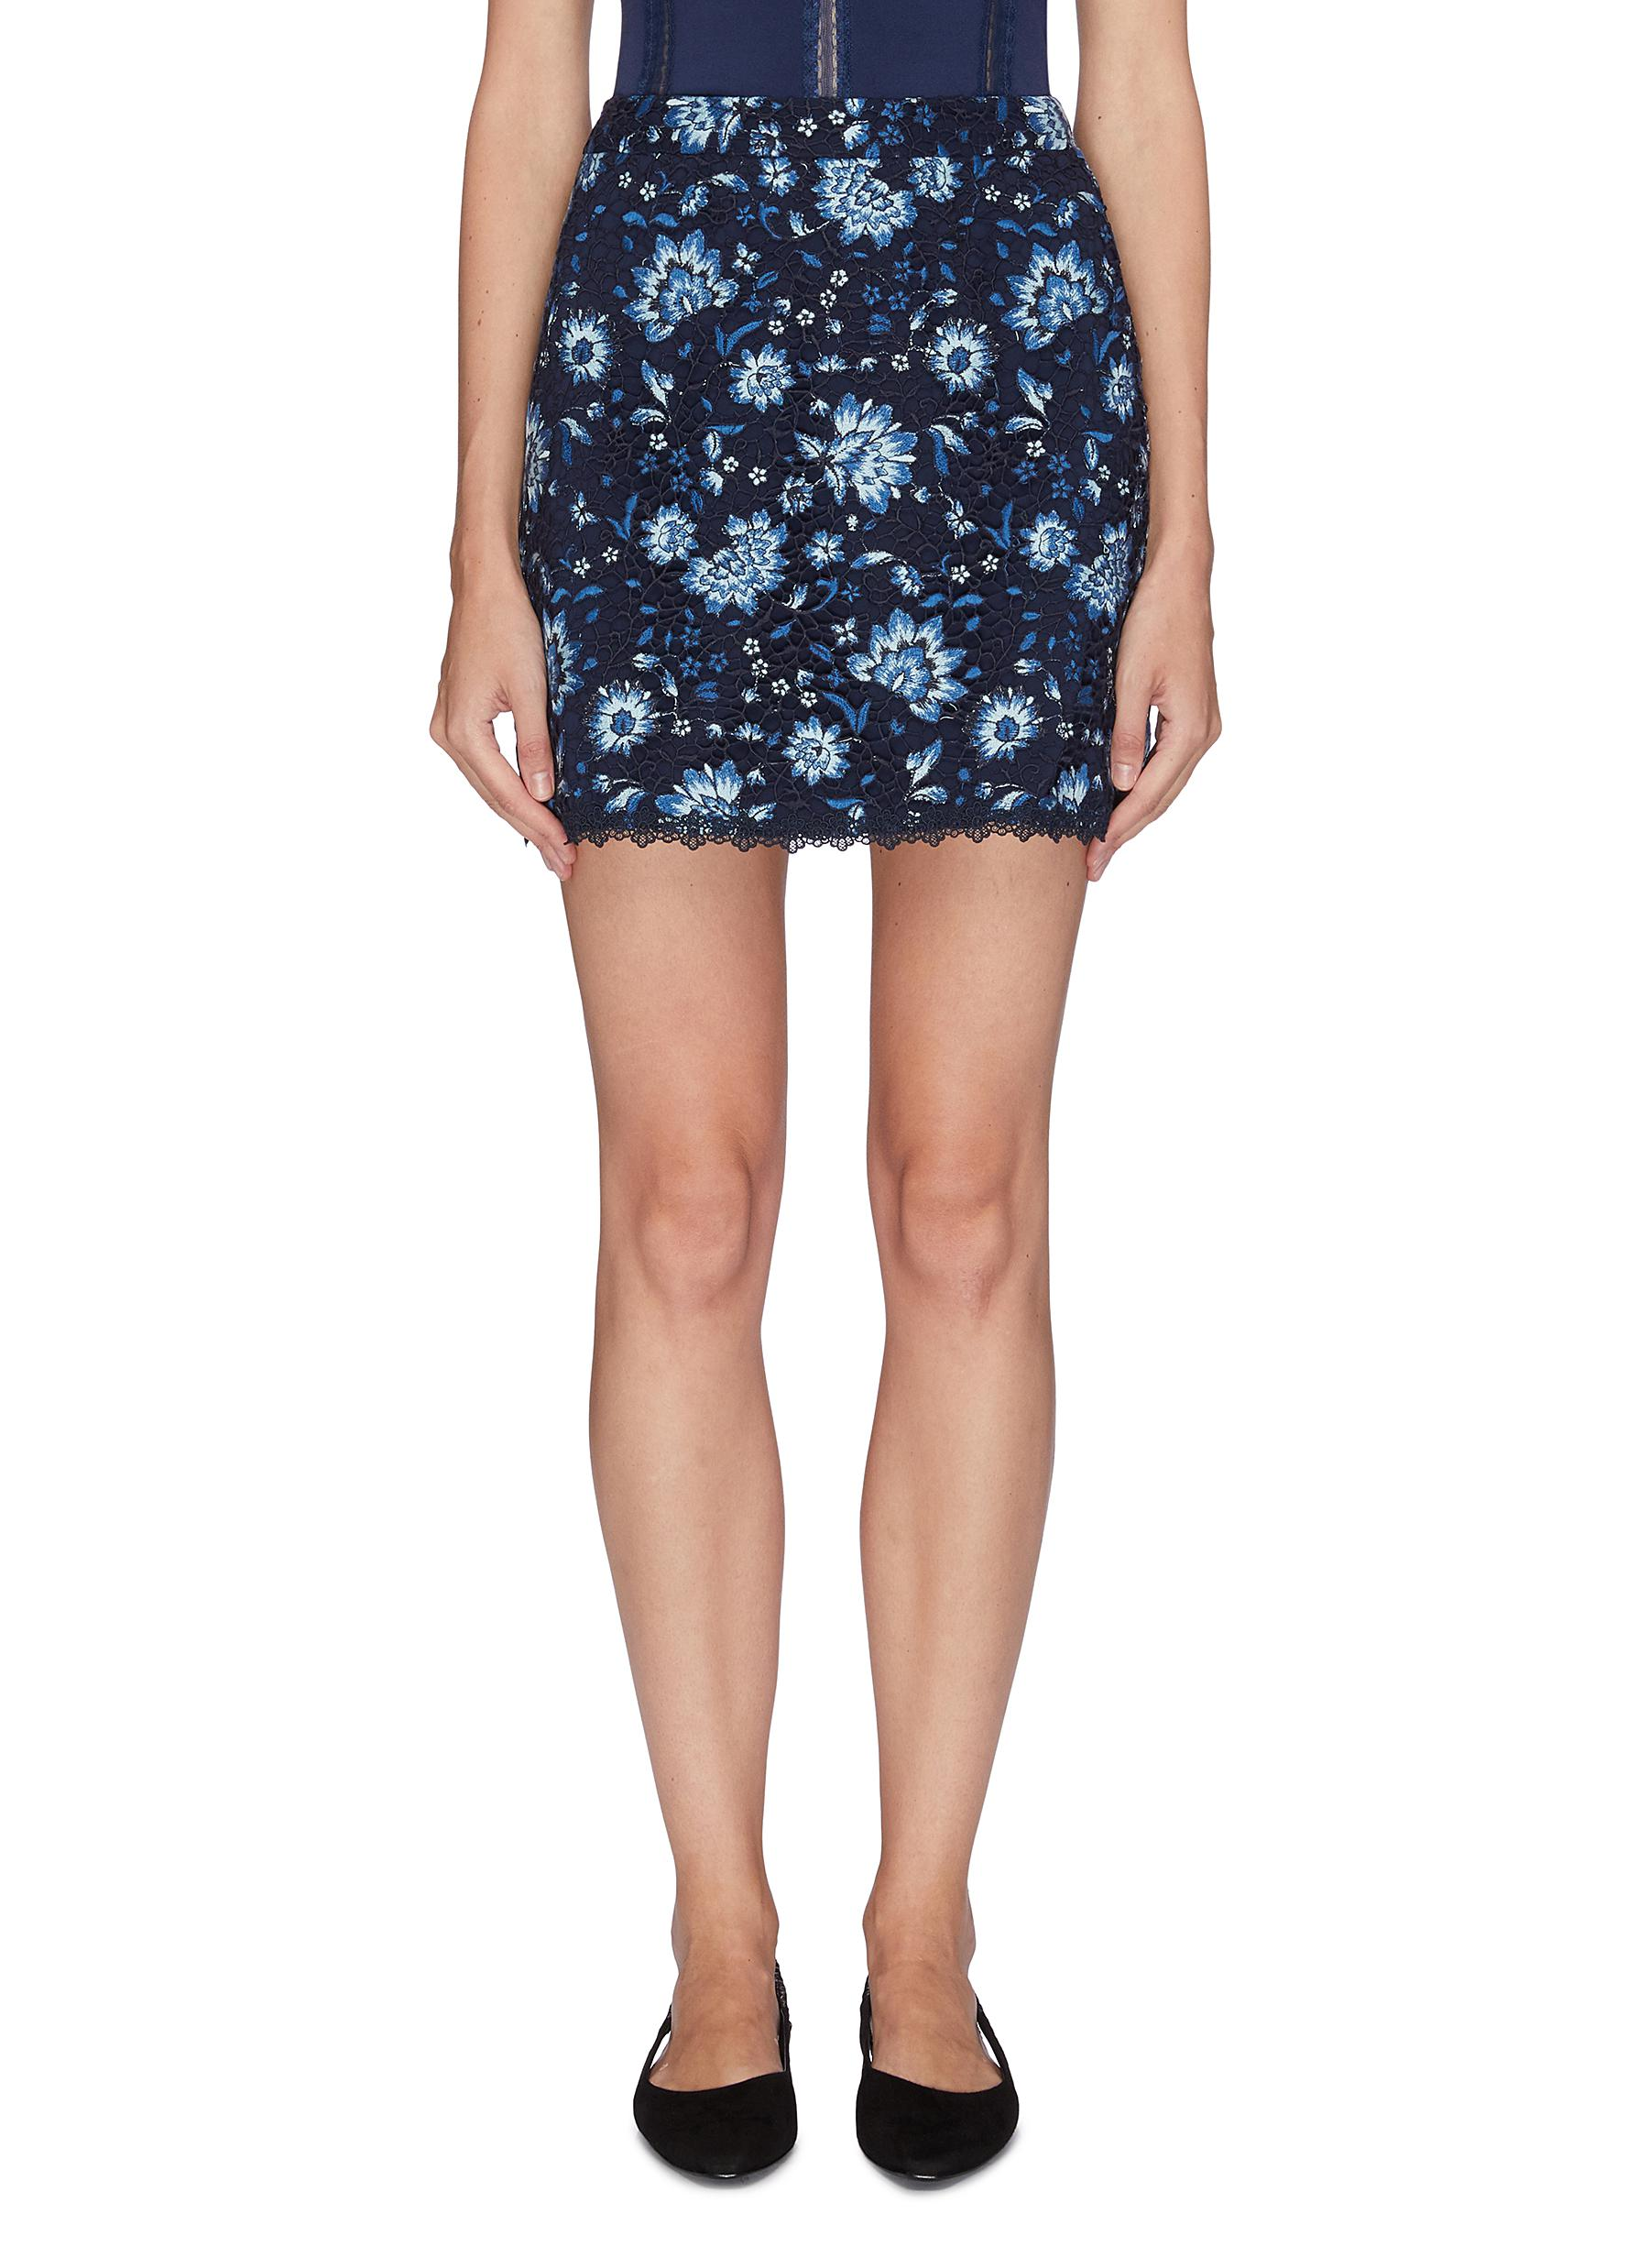 Tilda lace trim floral embroidered skirt by Alice + Olivia